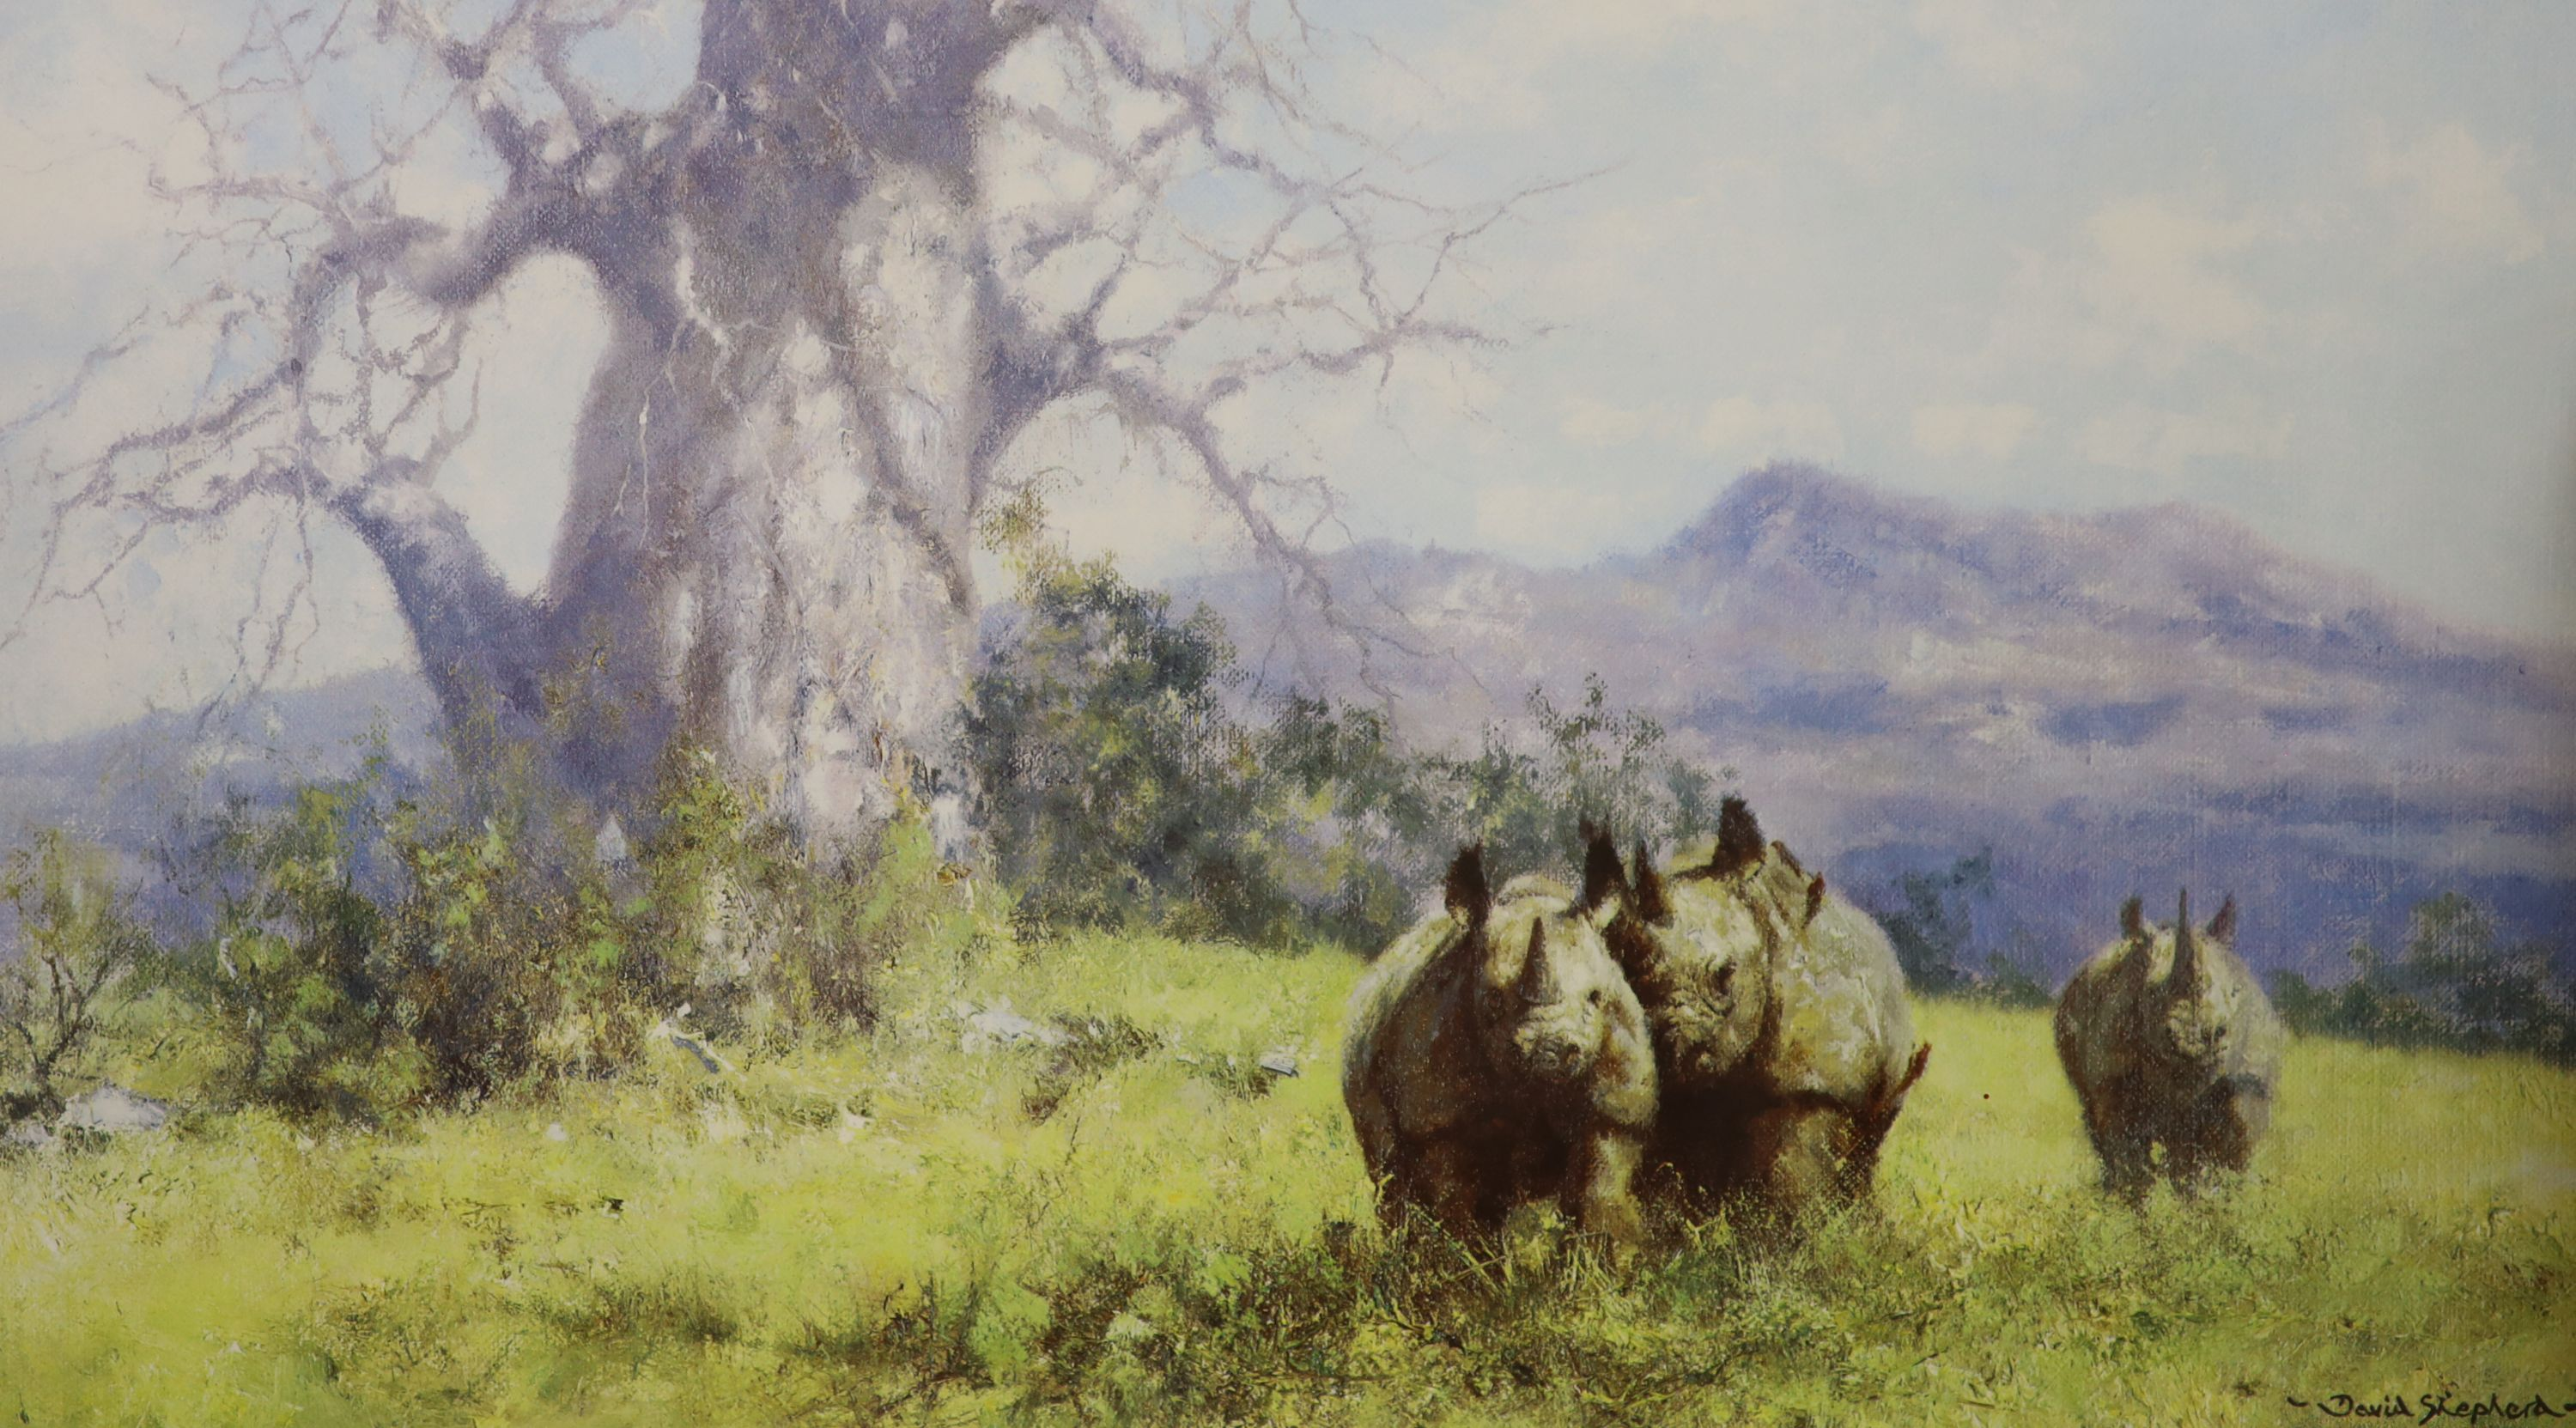 Three David Shepherd limited edition prints; Lion Sketch, Tiger Sketch and Rhino Reverie, signed - Image 3 of 4